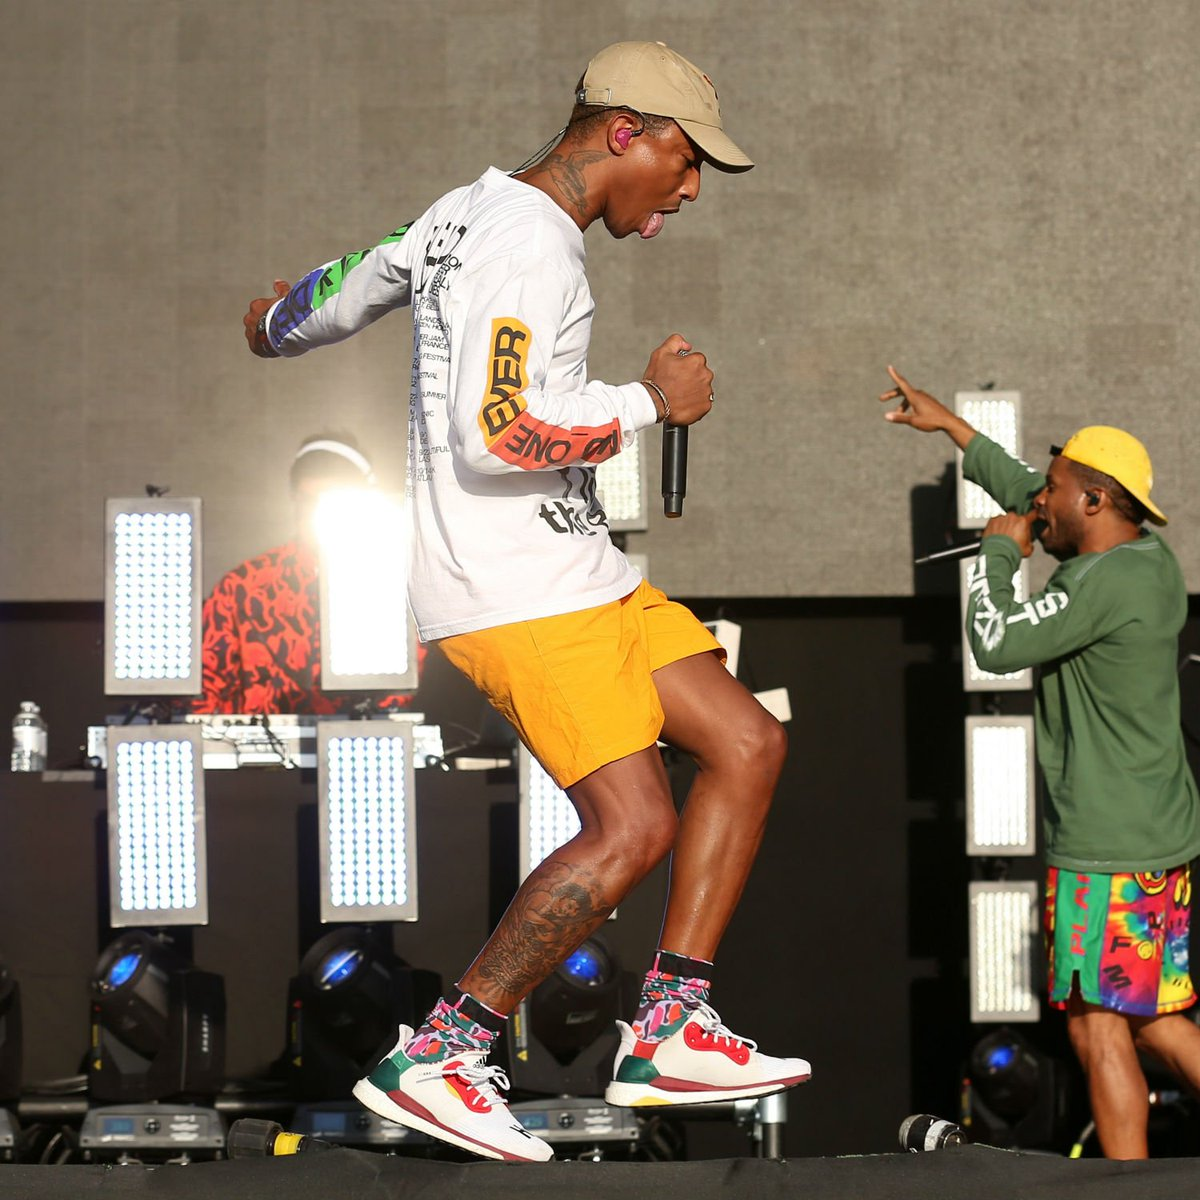 cac5cb4a32777 pharrell performing at reading festival in his adidas solar hu glide  sneaker. 📸   moniej44